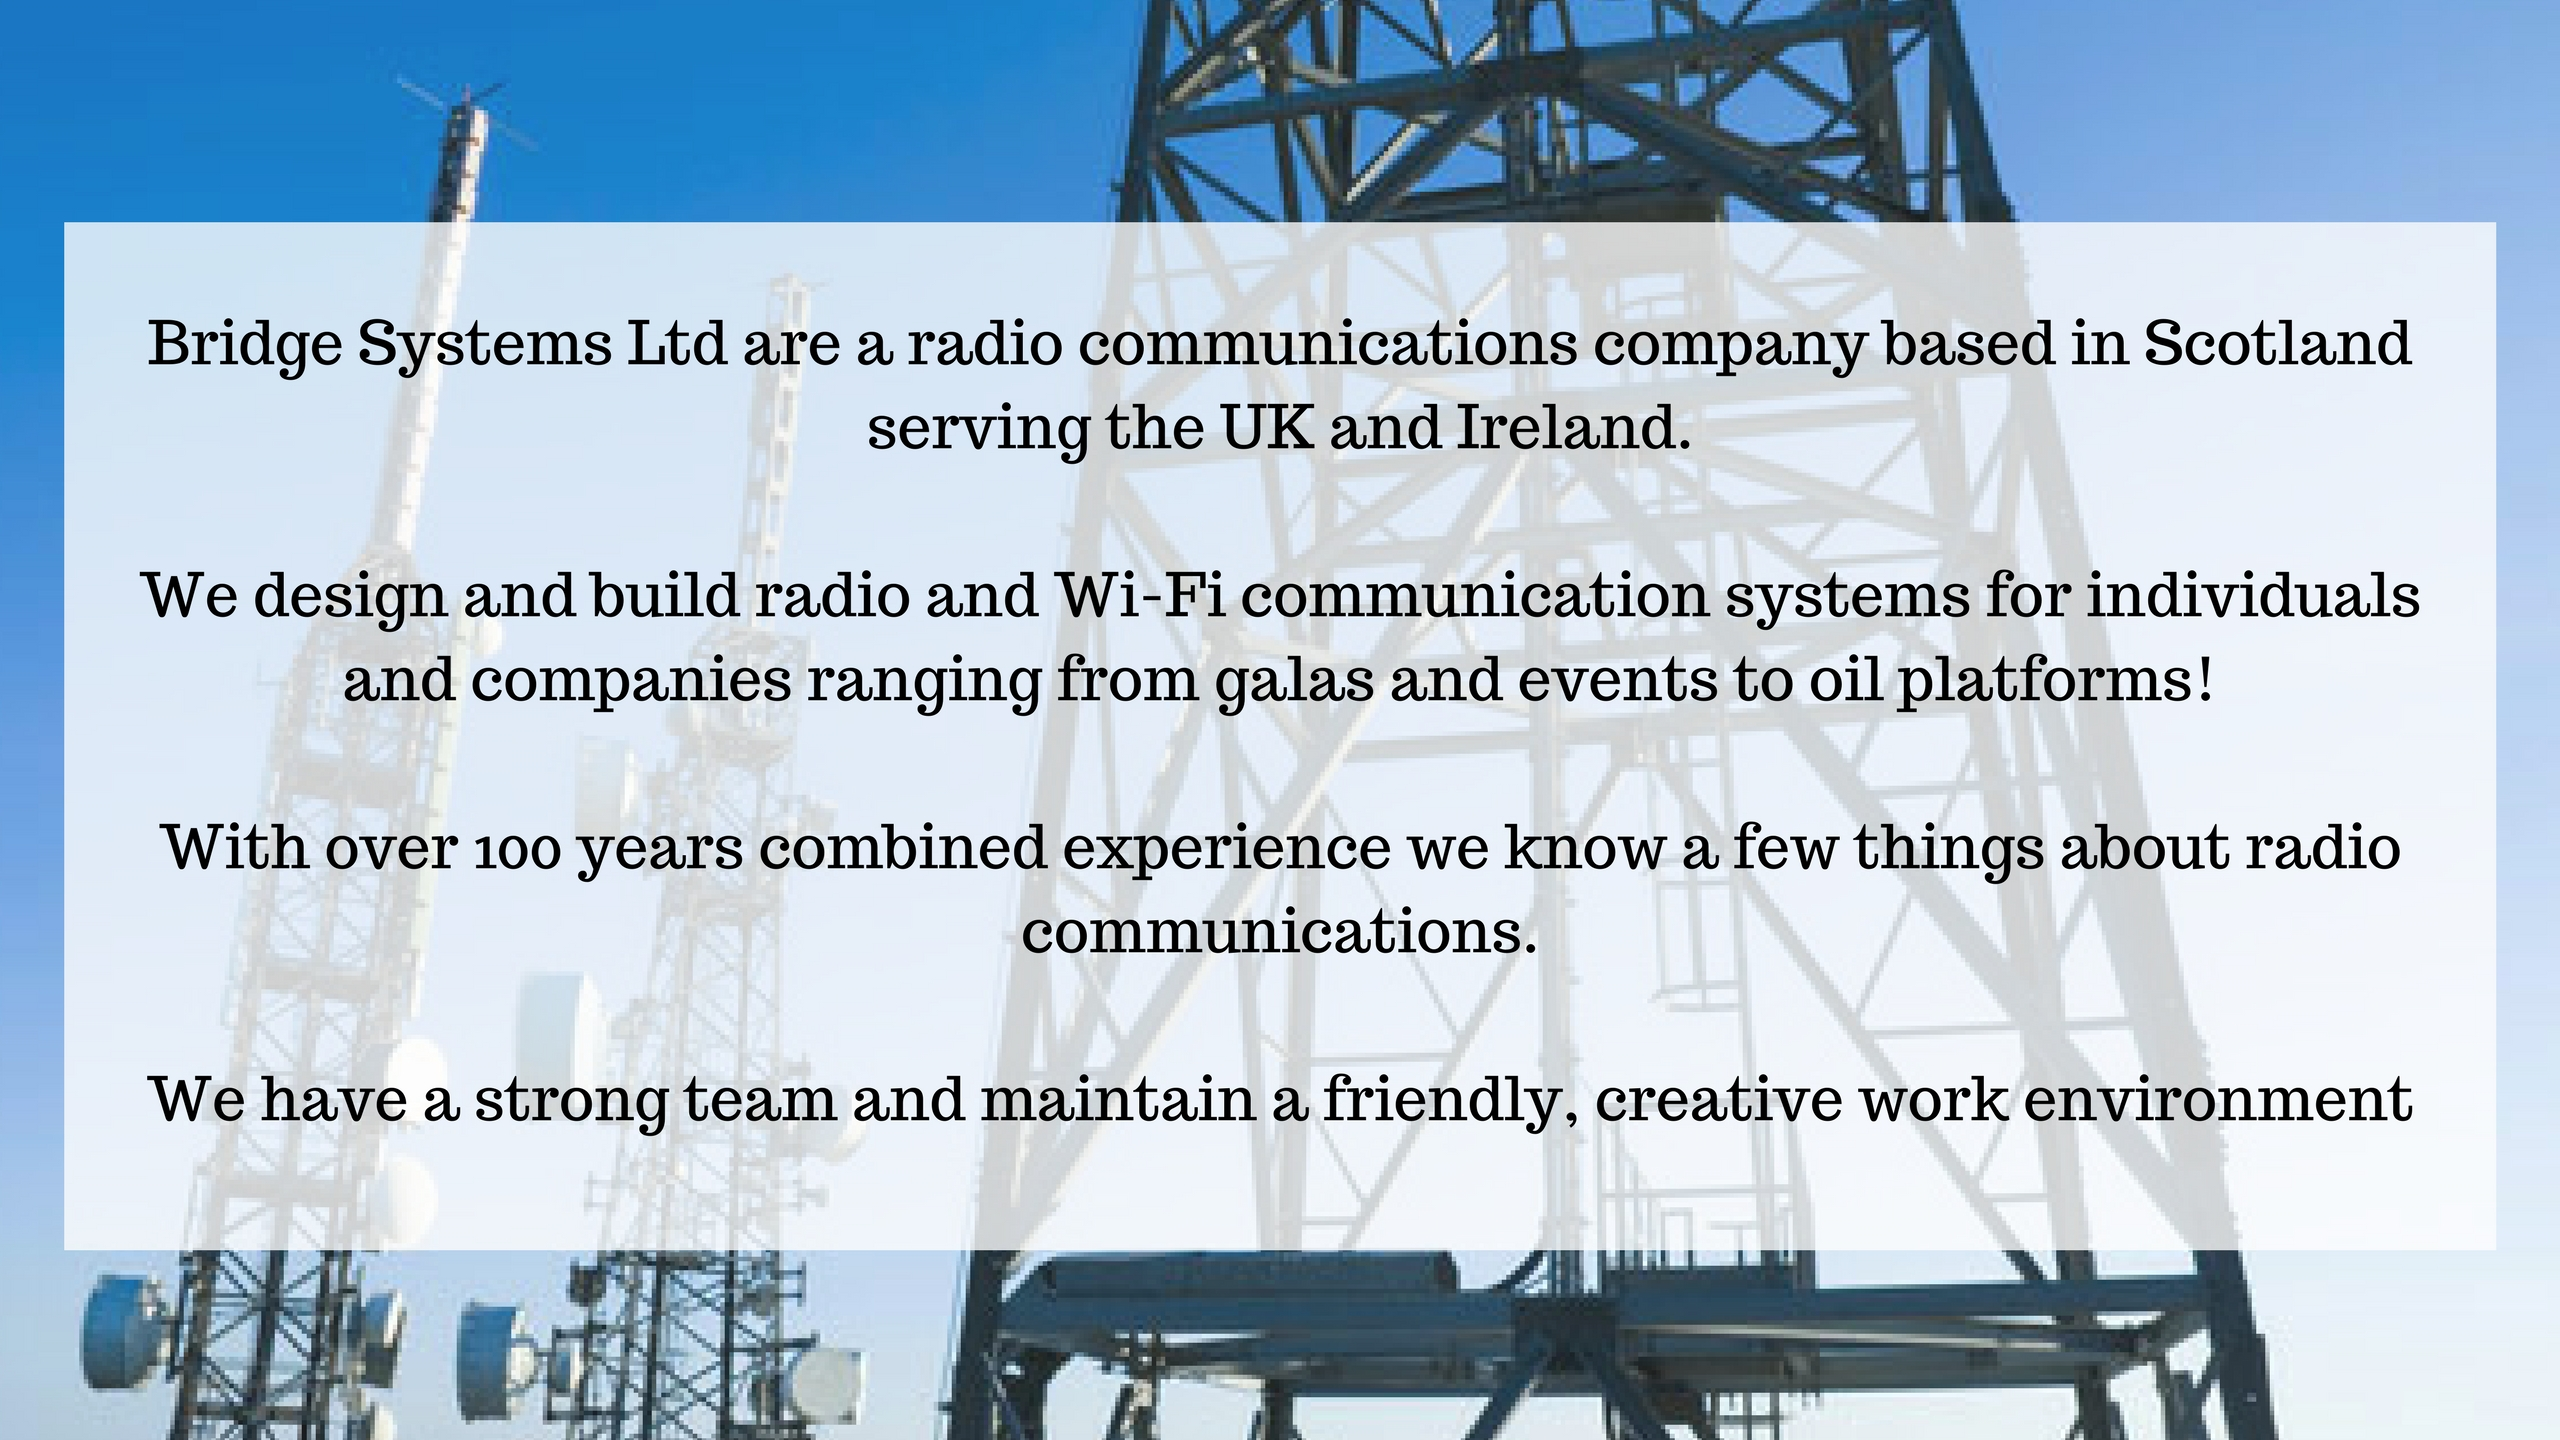 Bridge Systems Ltd picture of mast and company mission statement